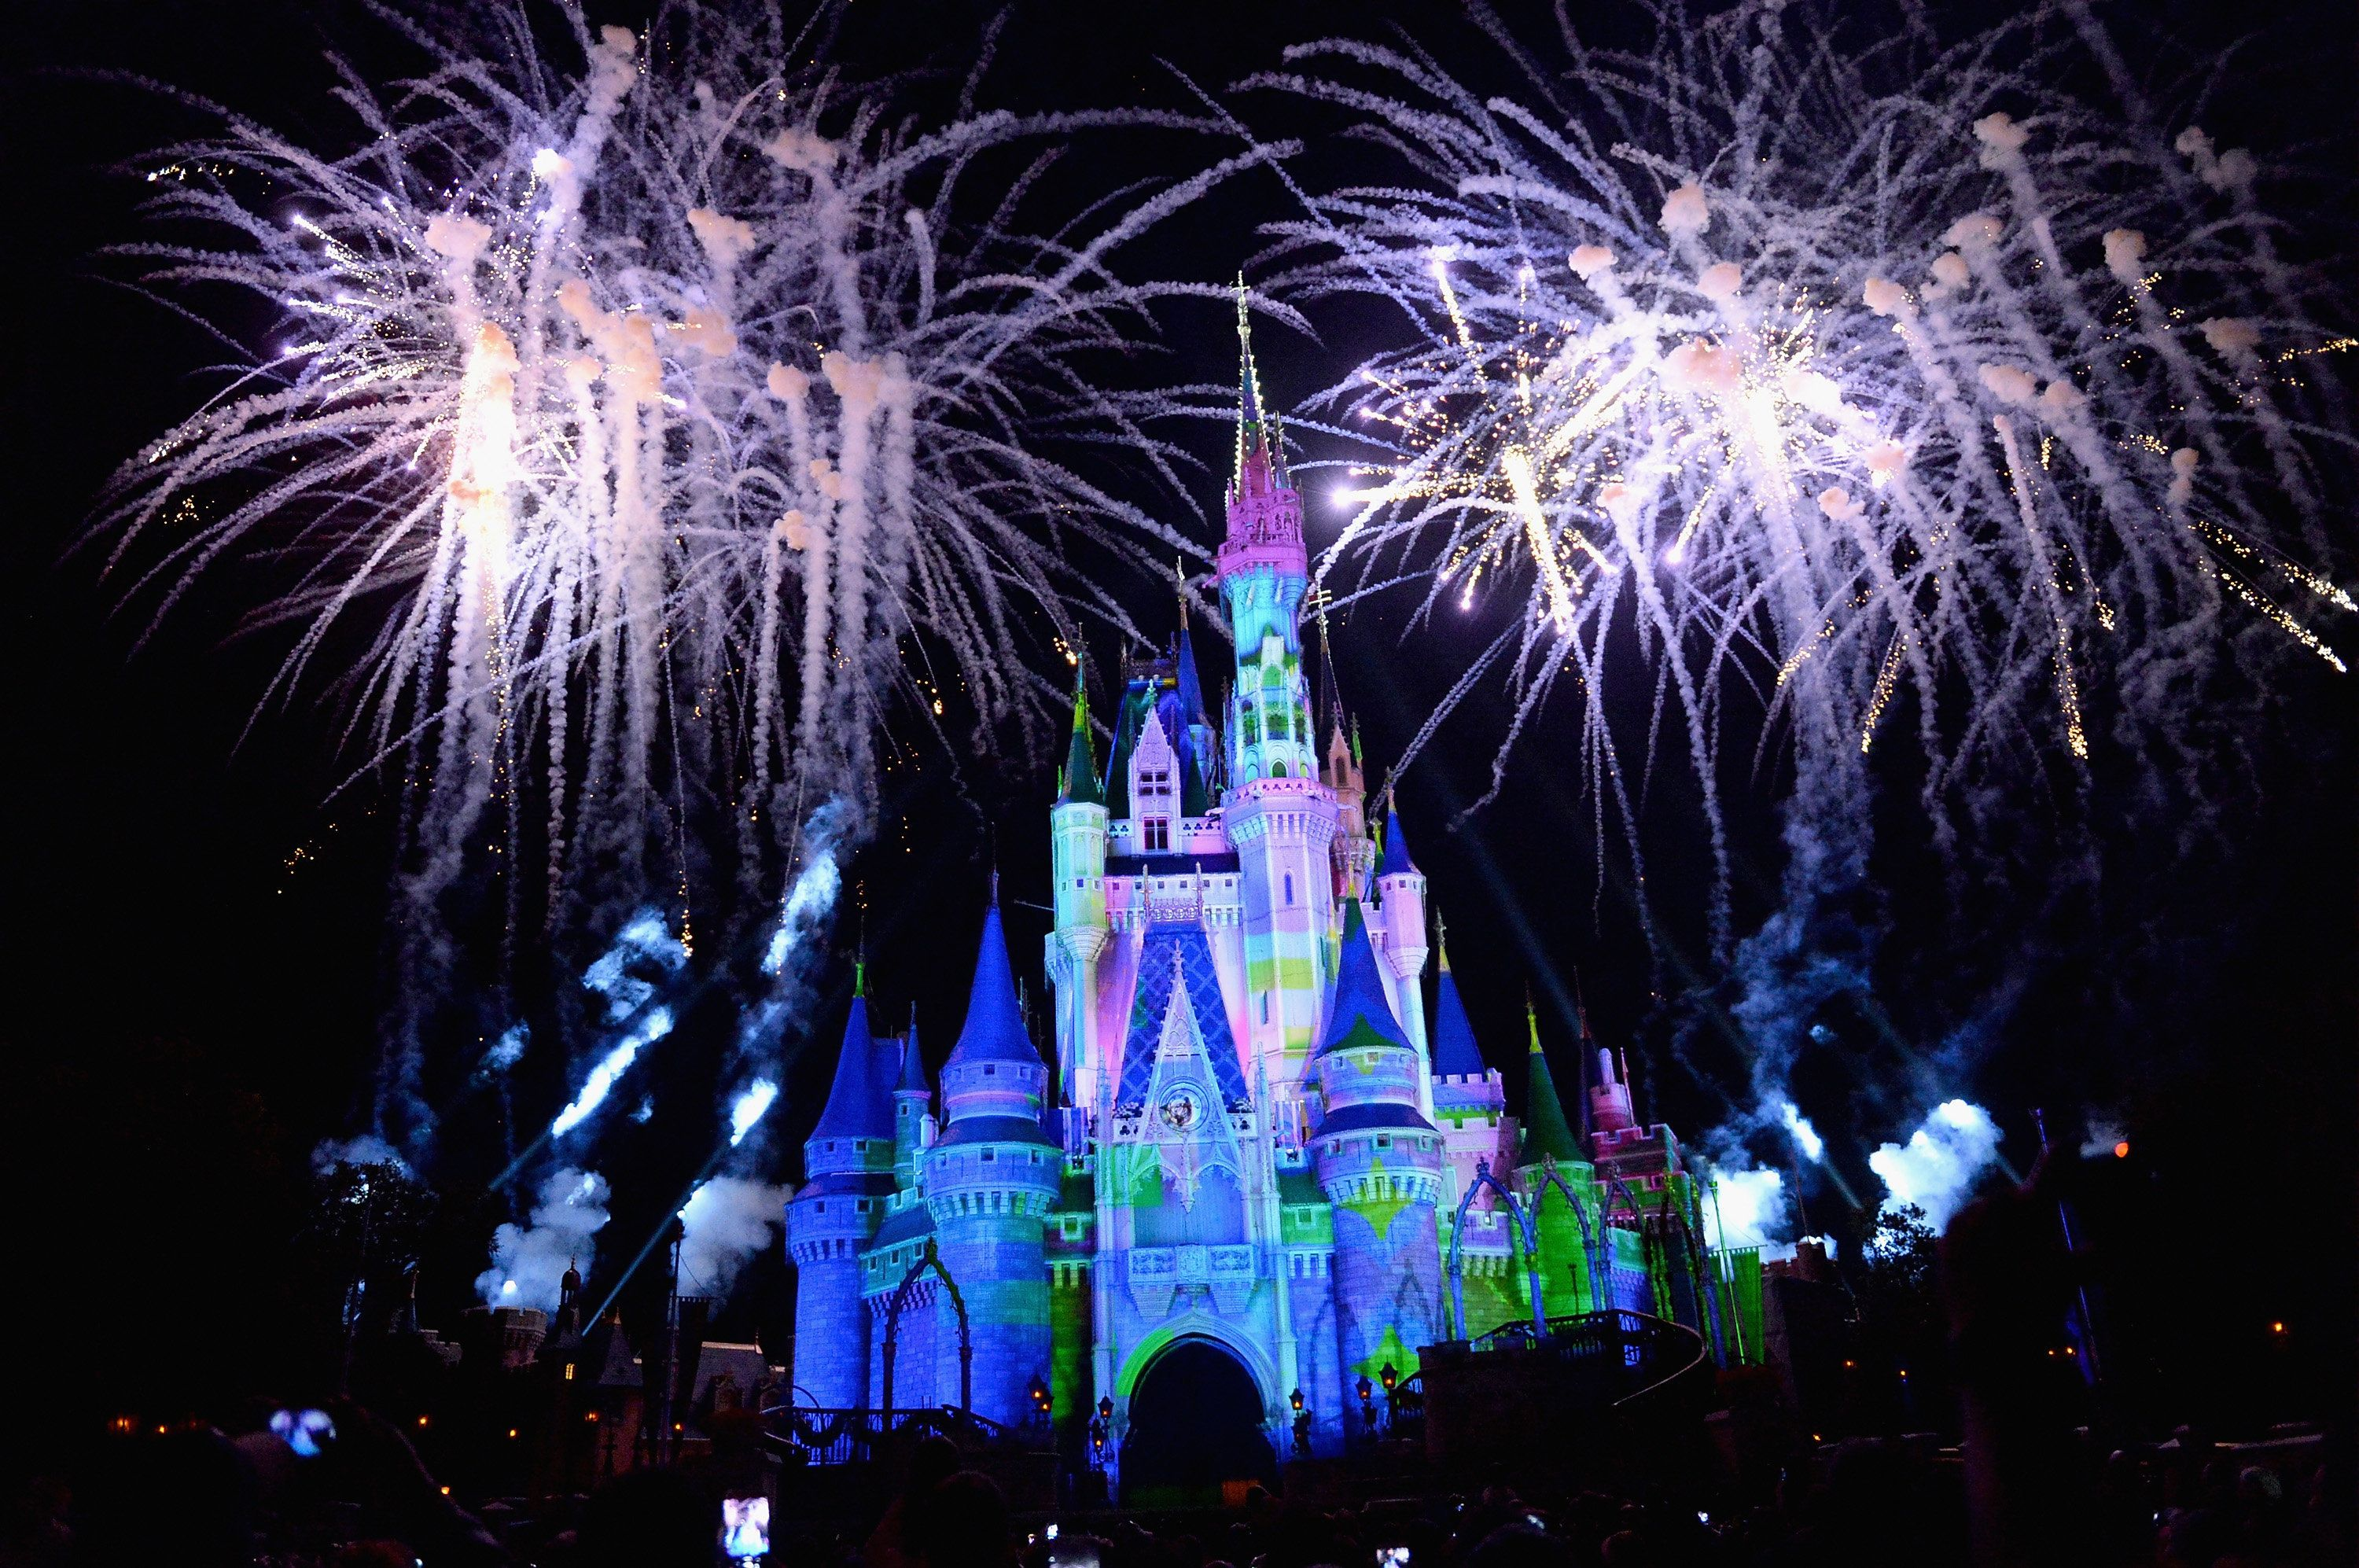 Mom Cancels Her Family Trip to Disney Due to Beauty and the Beasts Gay Moment